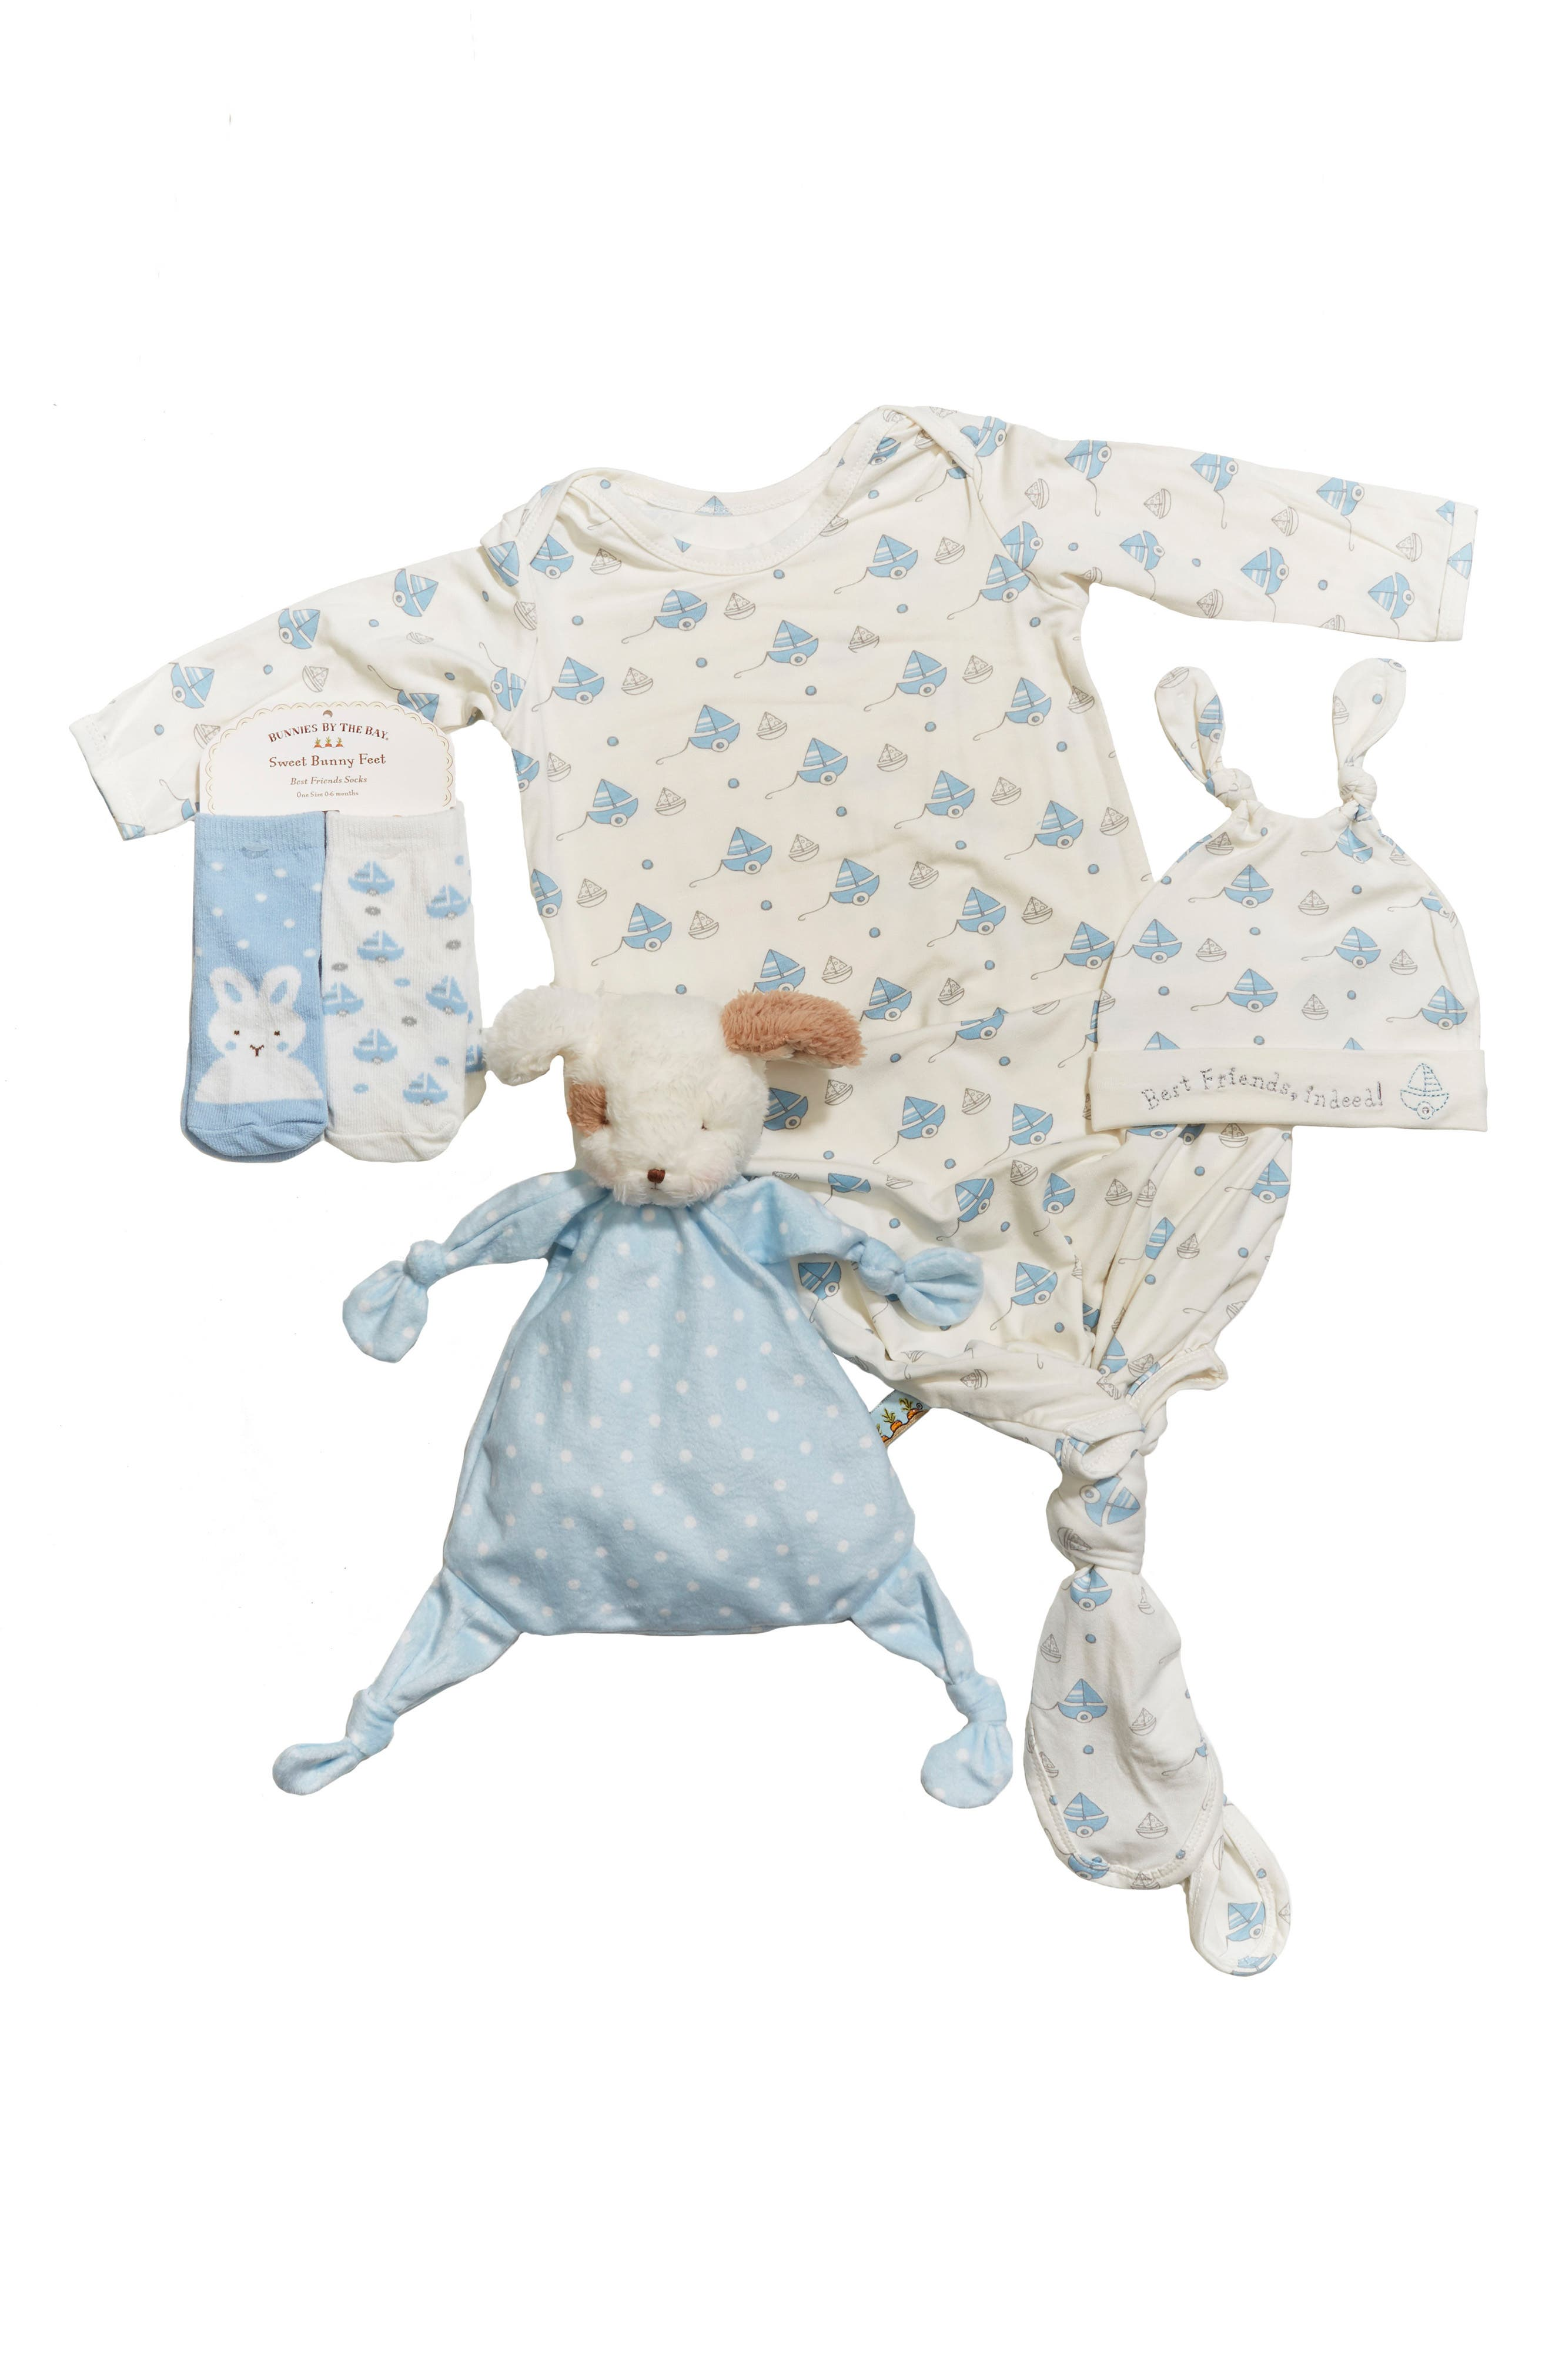 Bunnies By The Bay Gown, Hat, Socks & Lovey Set (Baby Boys)